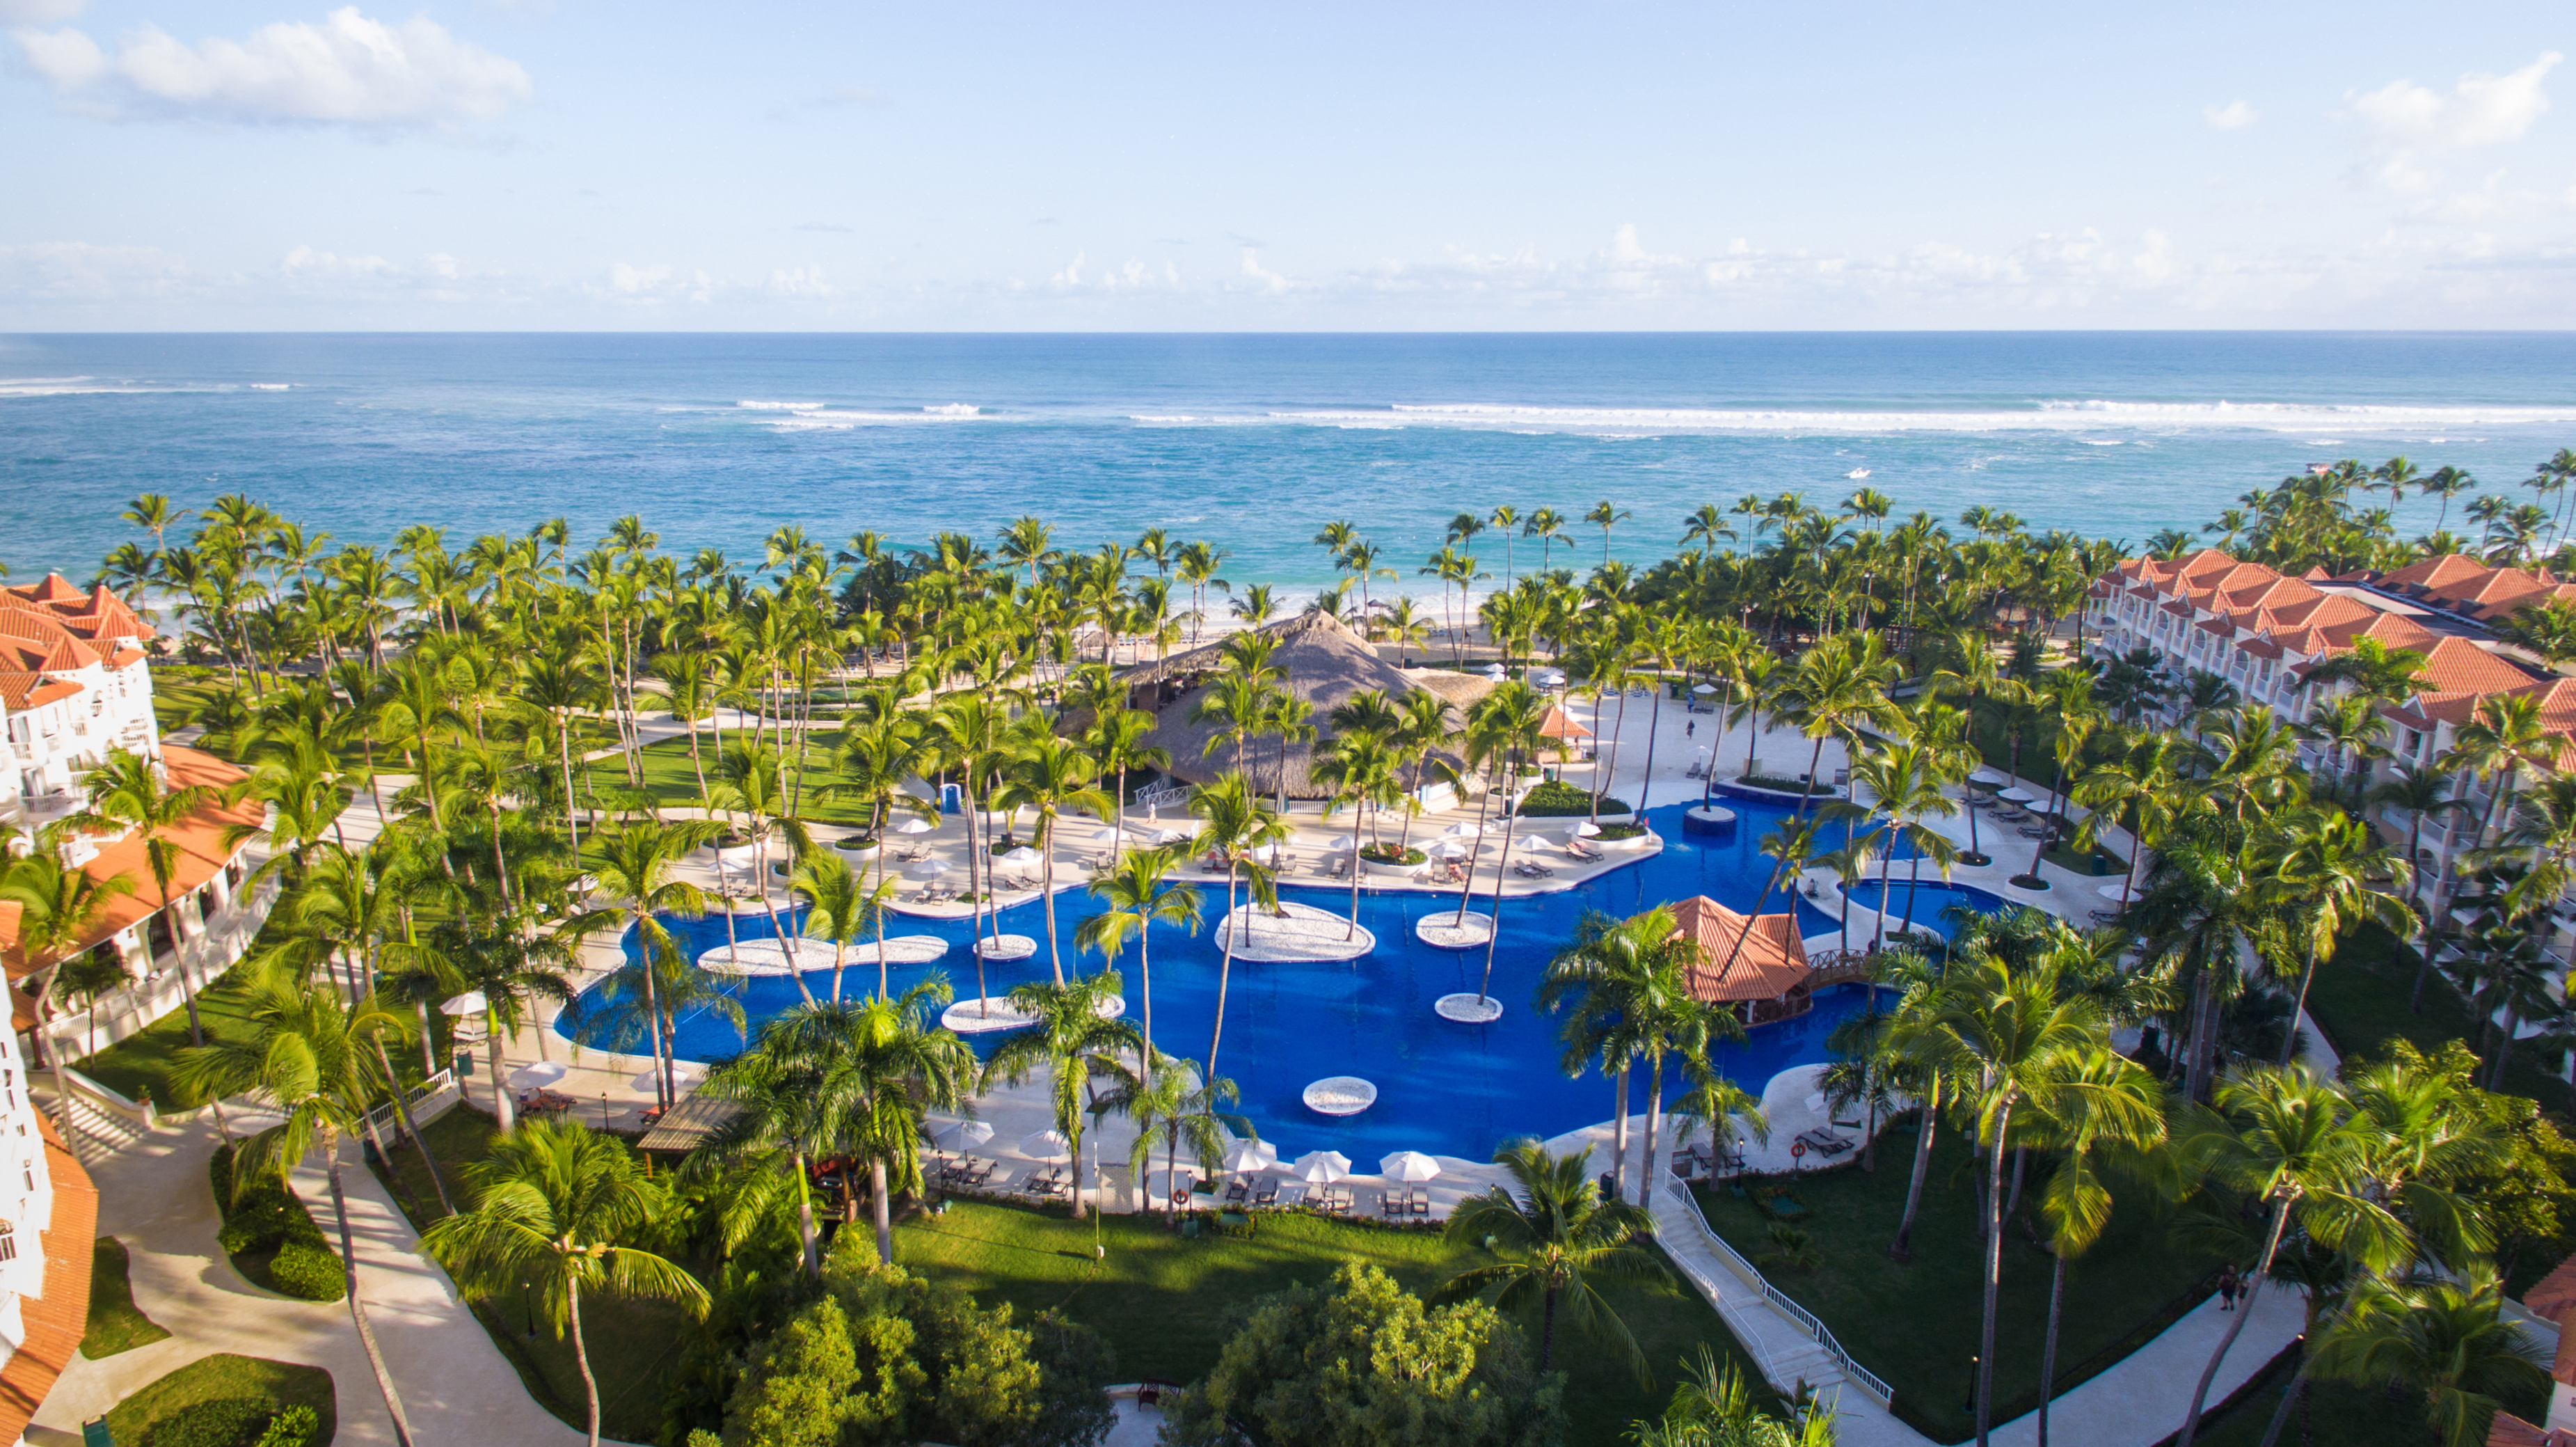 Honeymoon In The Caribbean At An All-Inclusive Resort